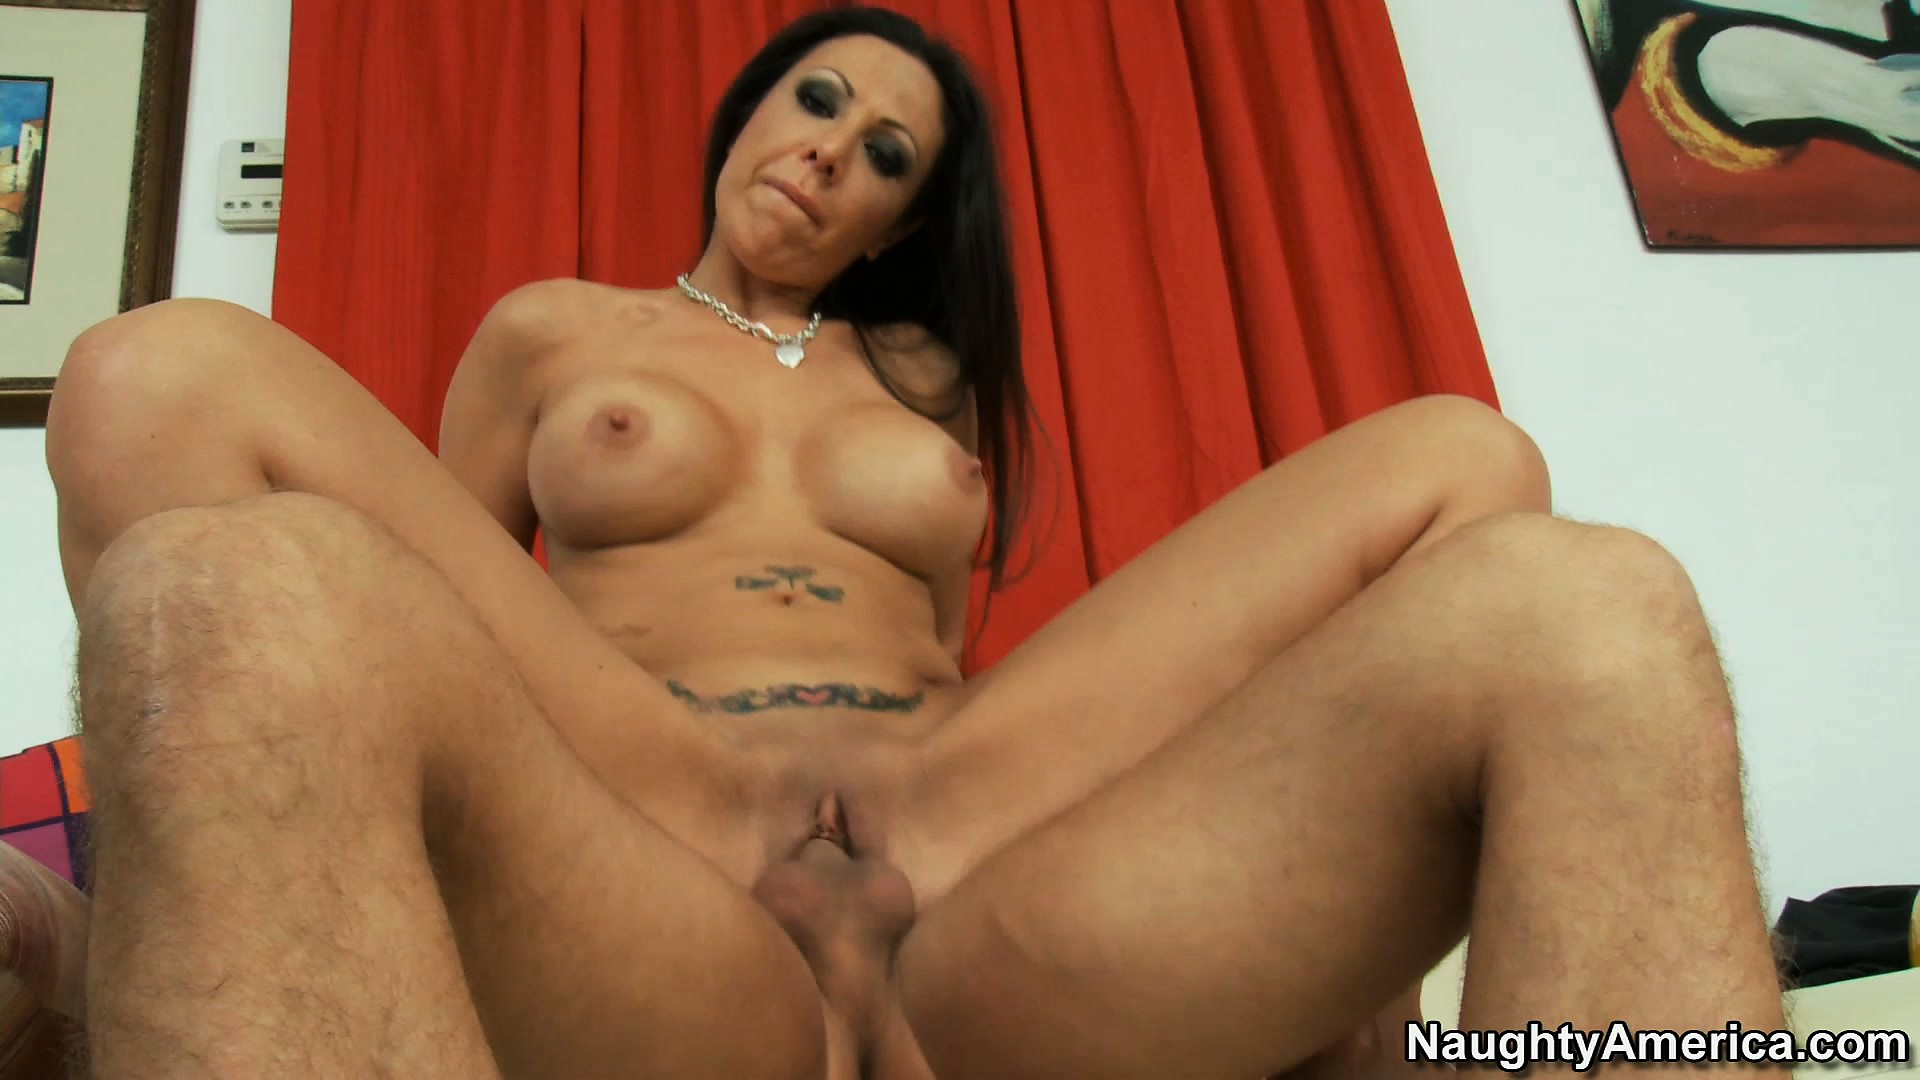 Amy Fisher Porn Movies free mobile porn & sex videos & sex movies - amy fisher